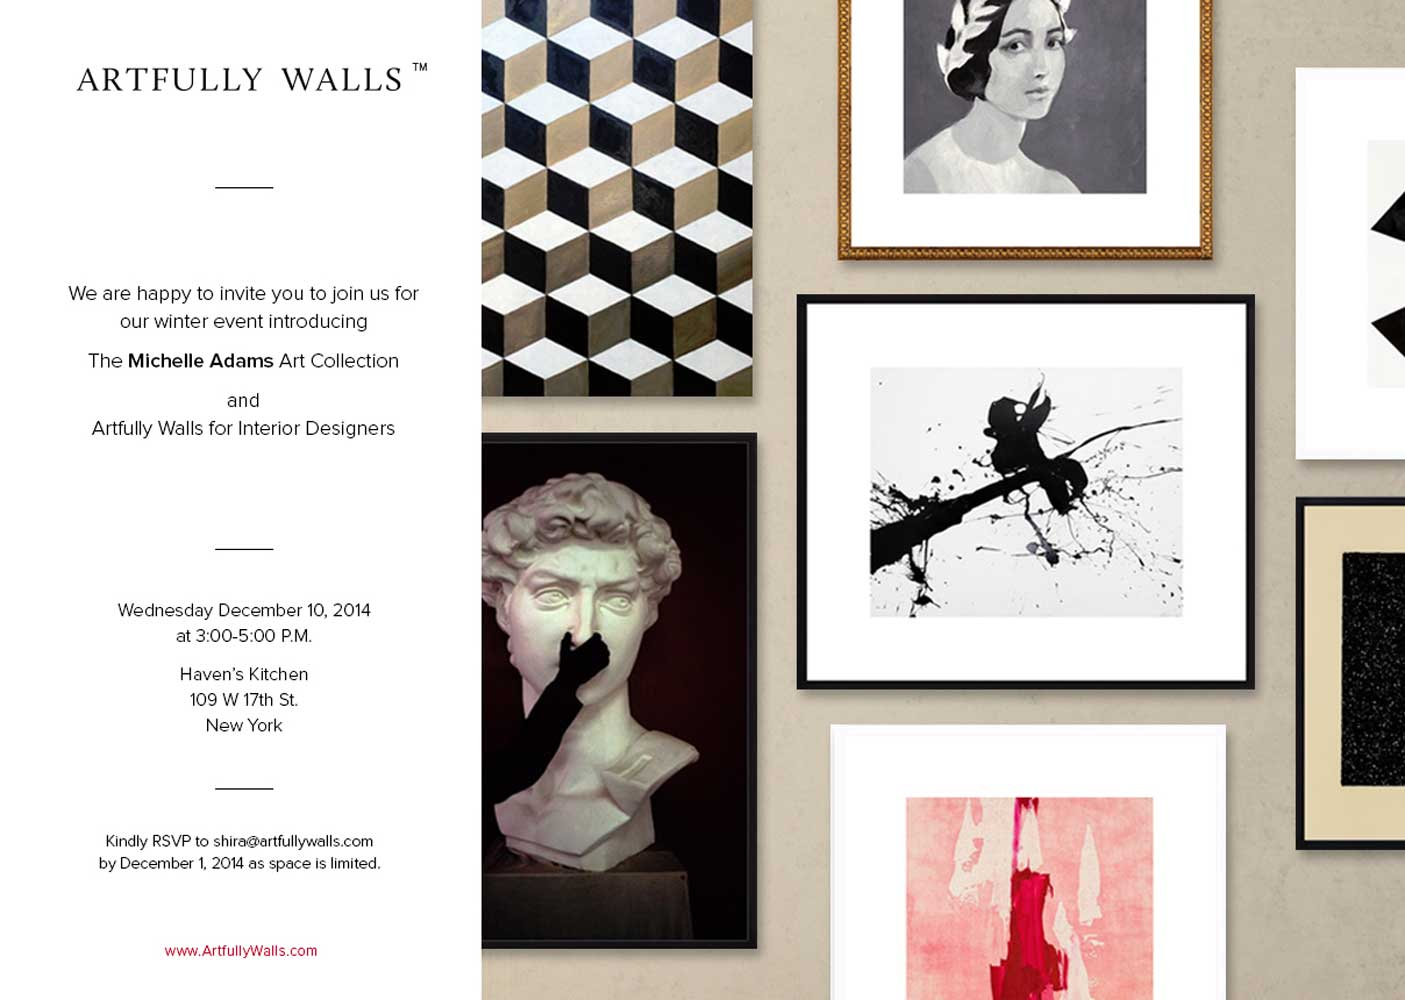 artfully_walls_press_2.jpg